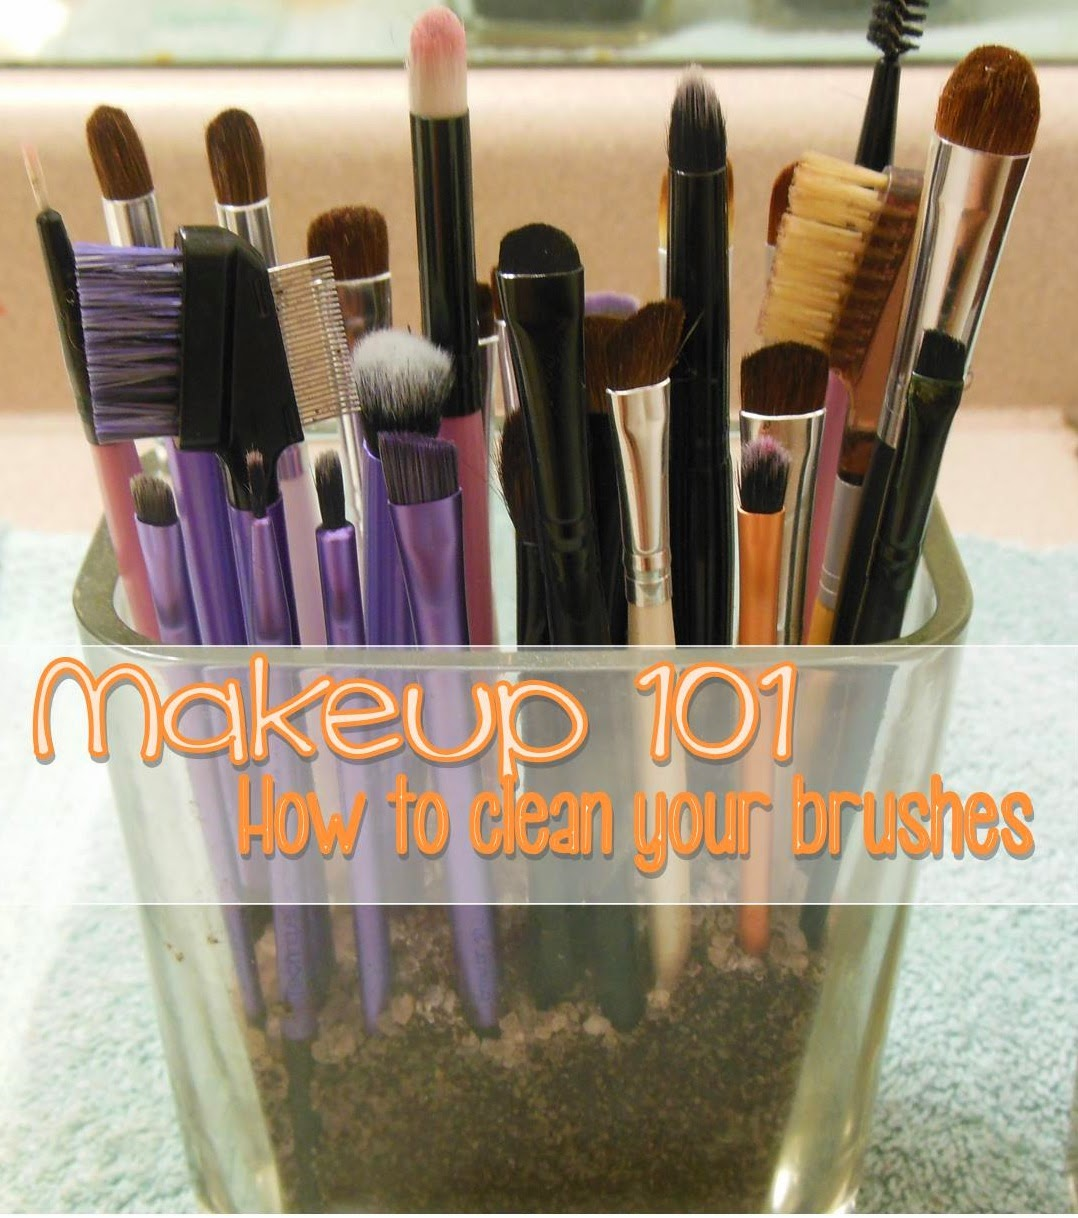 easy ways to clean makeup brushes at home, clean makeup brushes for acne prone skin